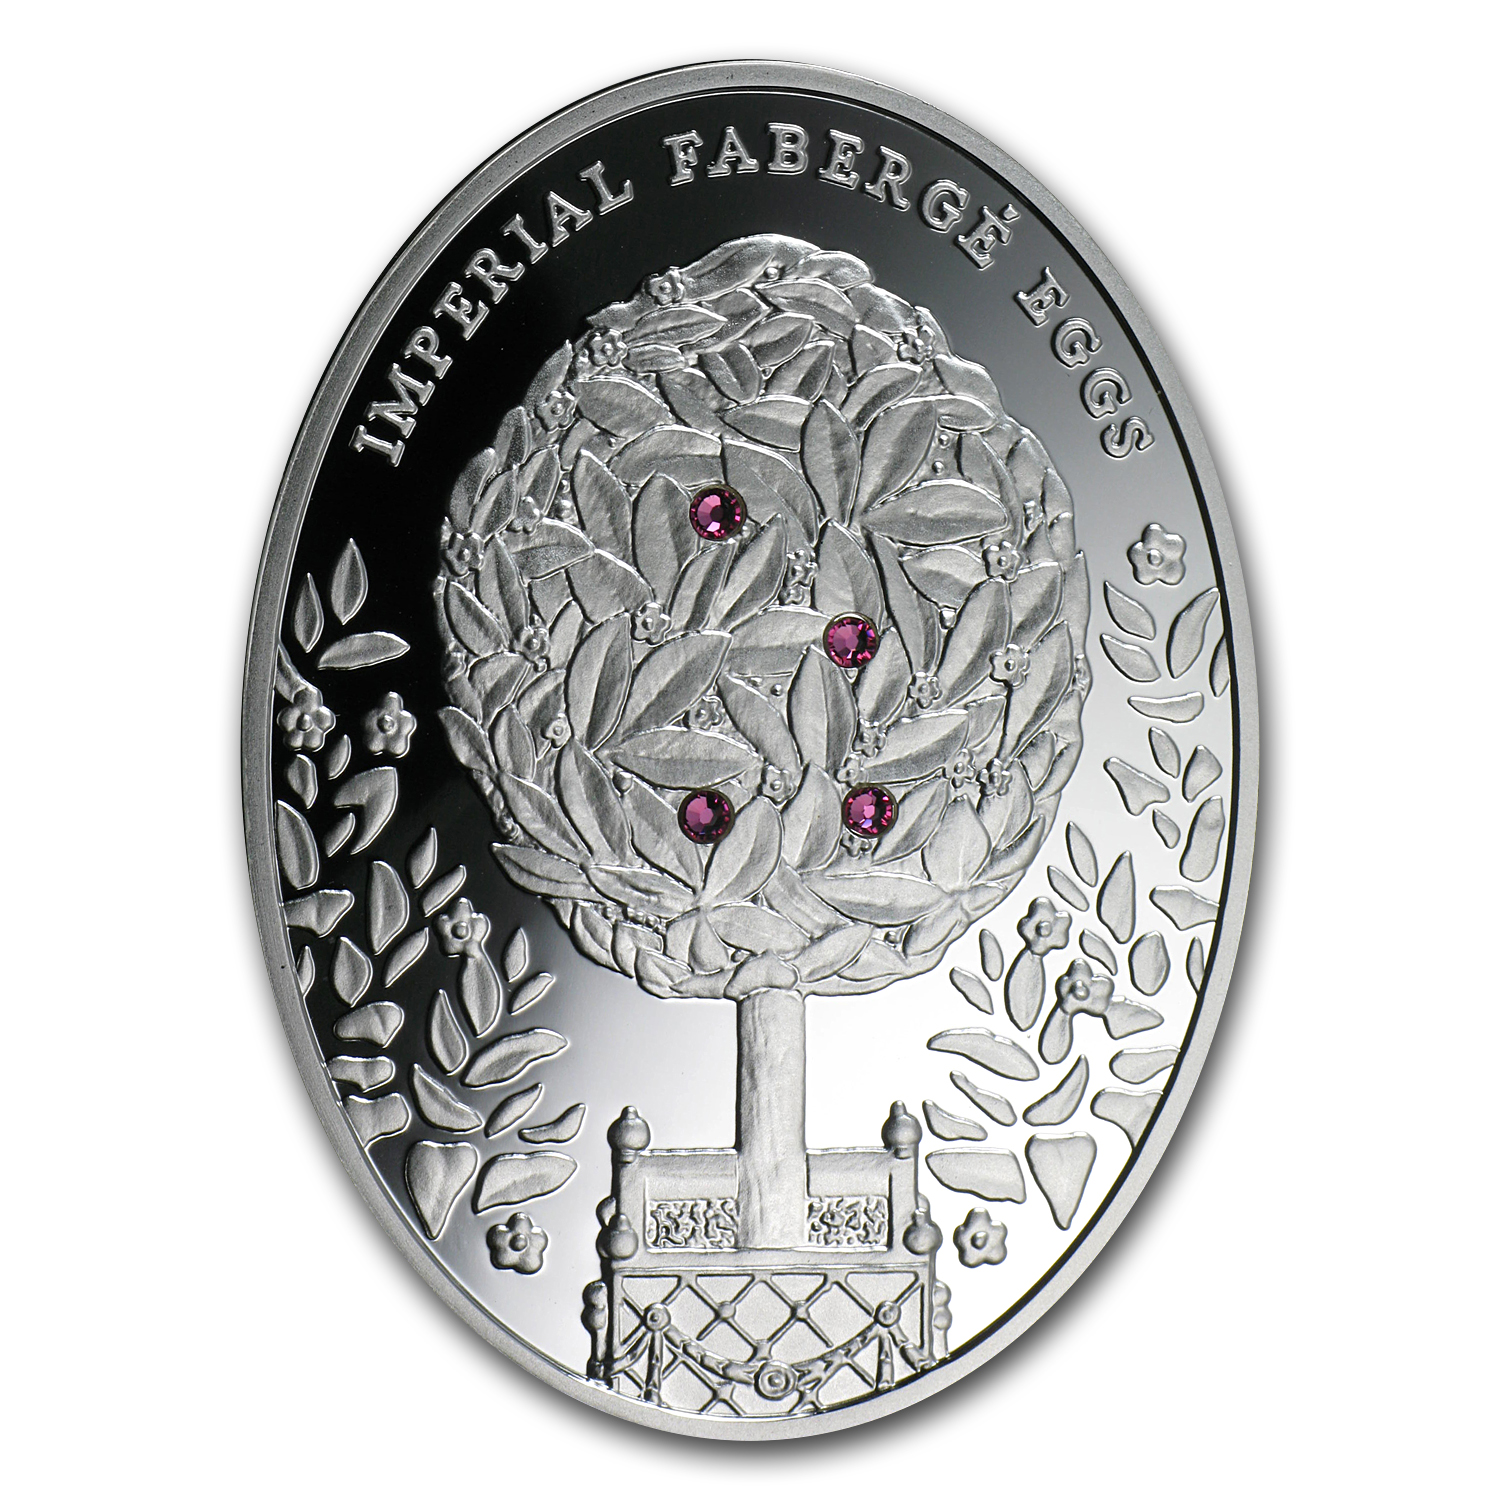 2012 Niue Proof Silver $2 Imperial Faberge Eggs Bay Tree